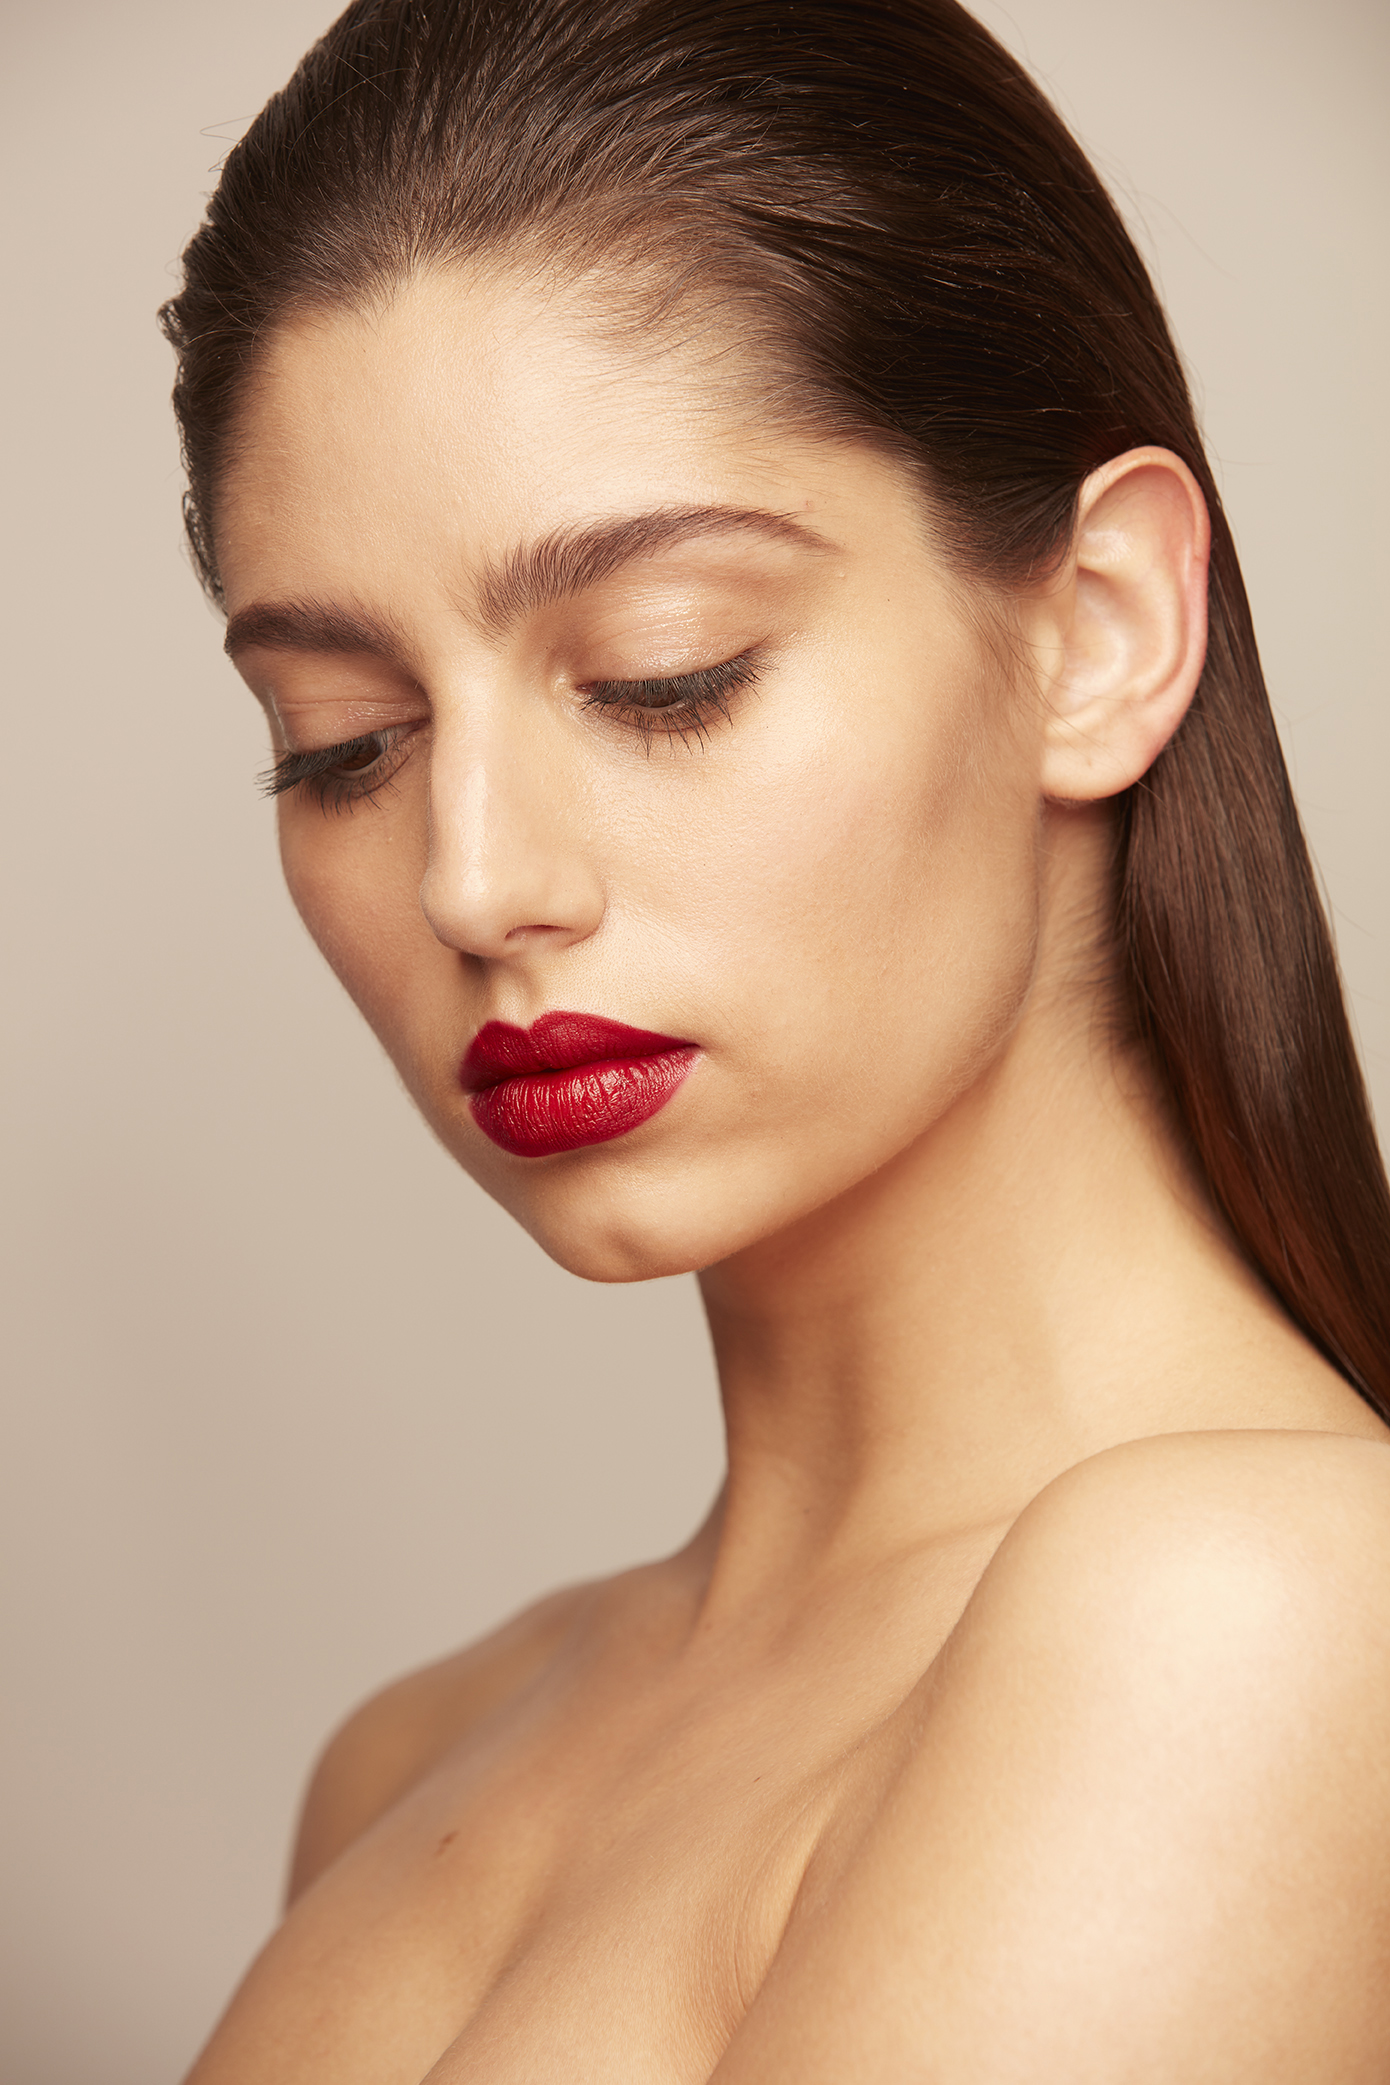 woman with swept back hair and red lipstick